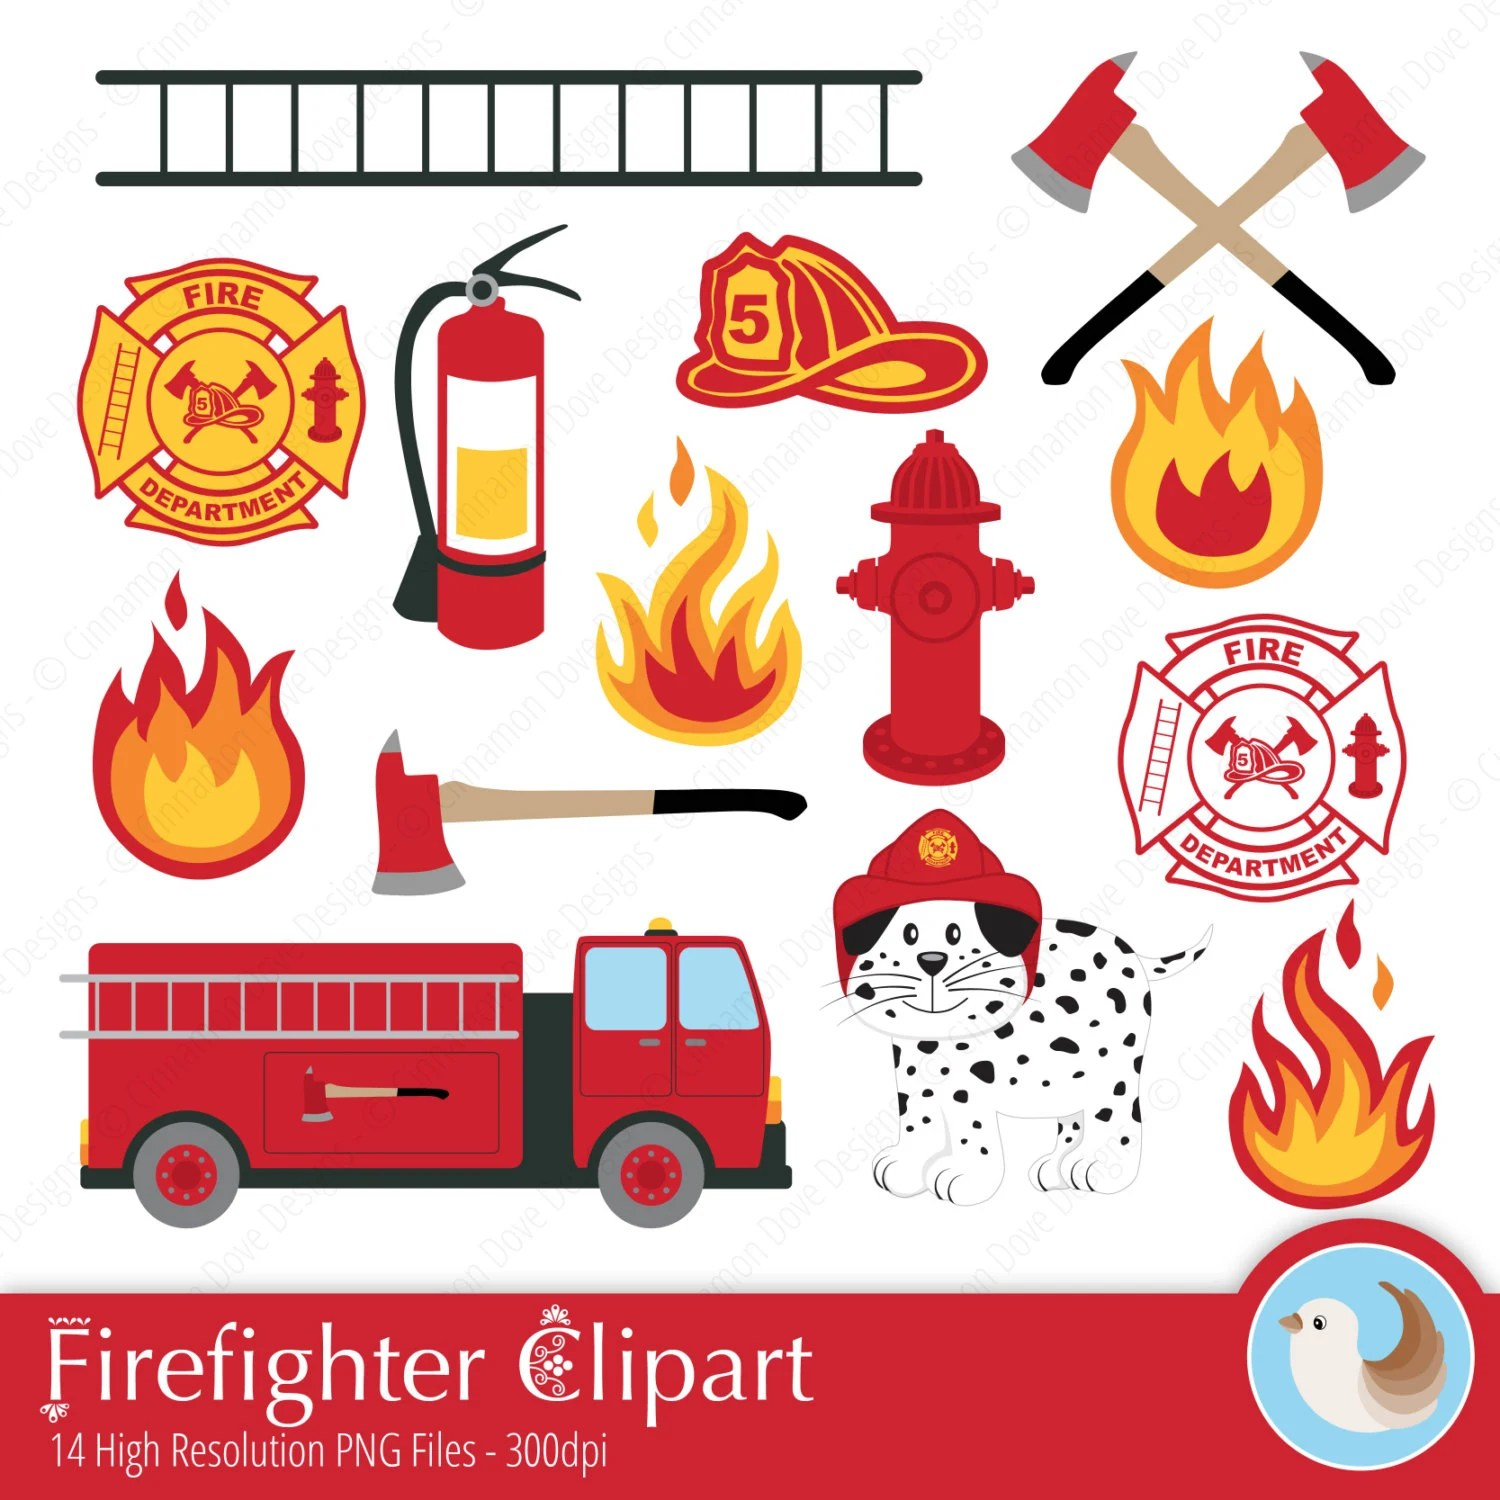 Firefighter Clipart Fireman Clipart Fire Station Fire